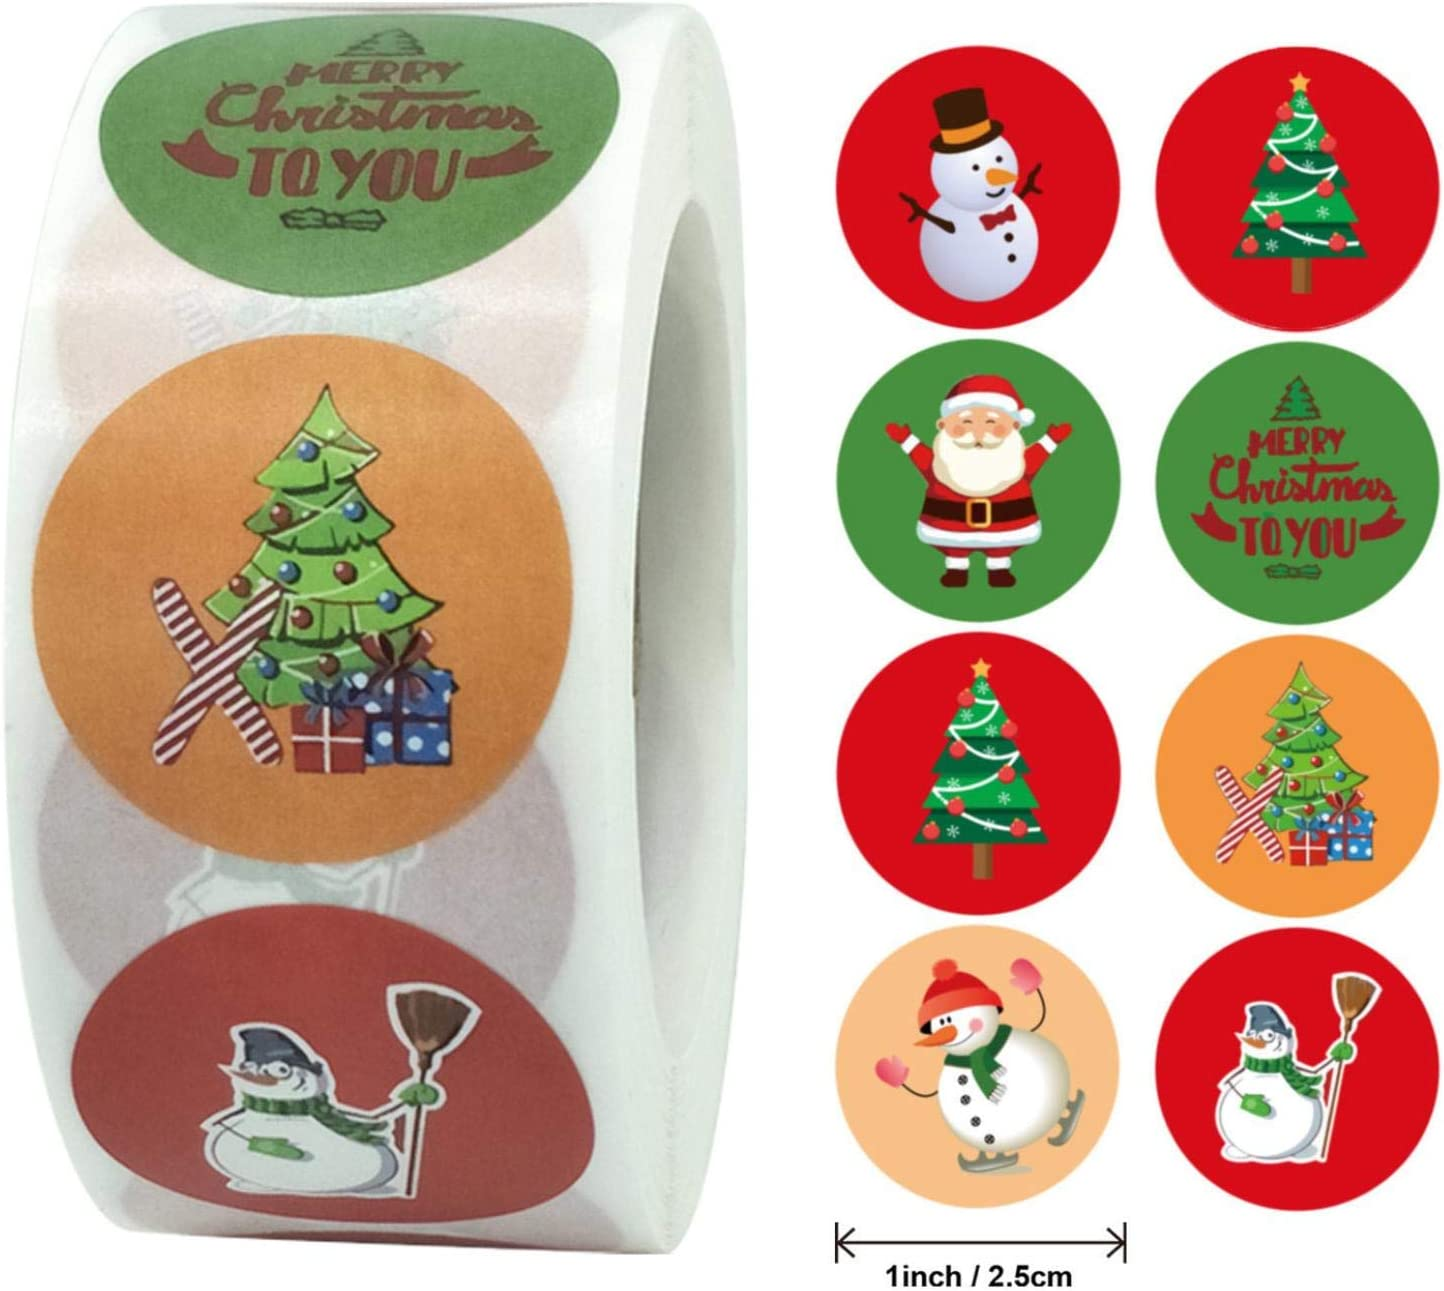 Qvwanle Christmas Pack Sticker,New 1 Roll 500 Posts Round DIY Tags Gift Decorating Pack Sticker for Holiday Greeting, Sealing, Gifting, Office, Gift Decorations (Q)